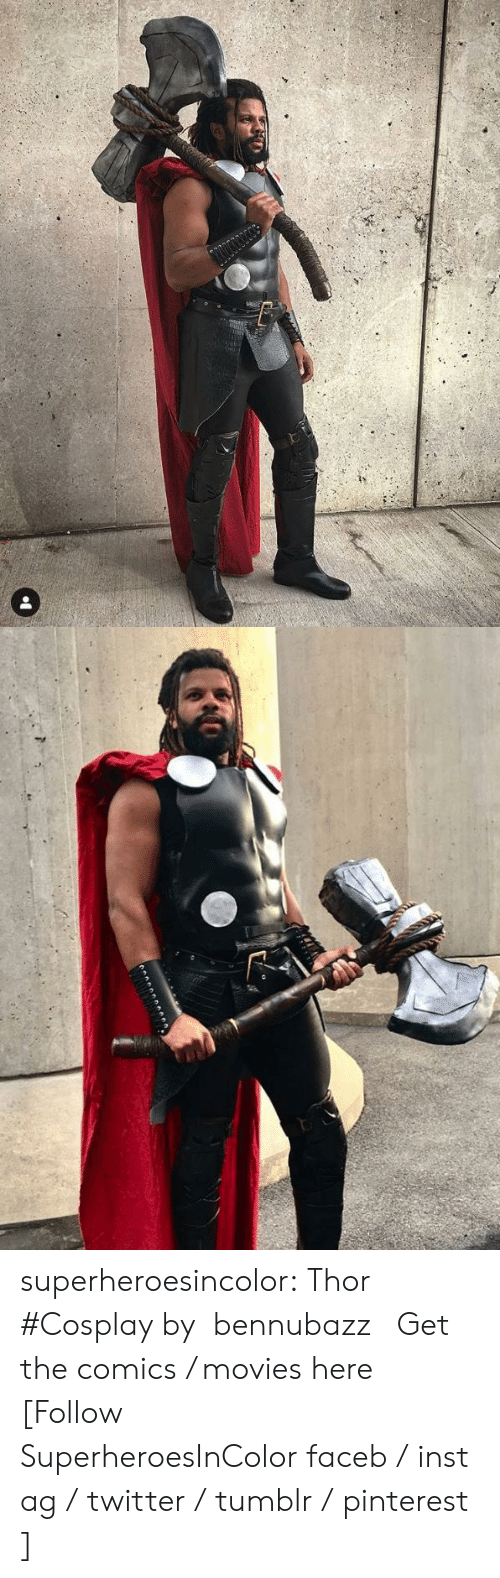 Sans: superheroesincolor: Thor #Cosplay by  bennubazz    Get the comics / movies here [Follow SuperheroesInColor faceb / instag / twitter / tumblr / pinterest]